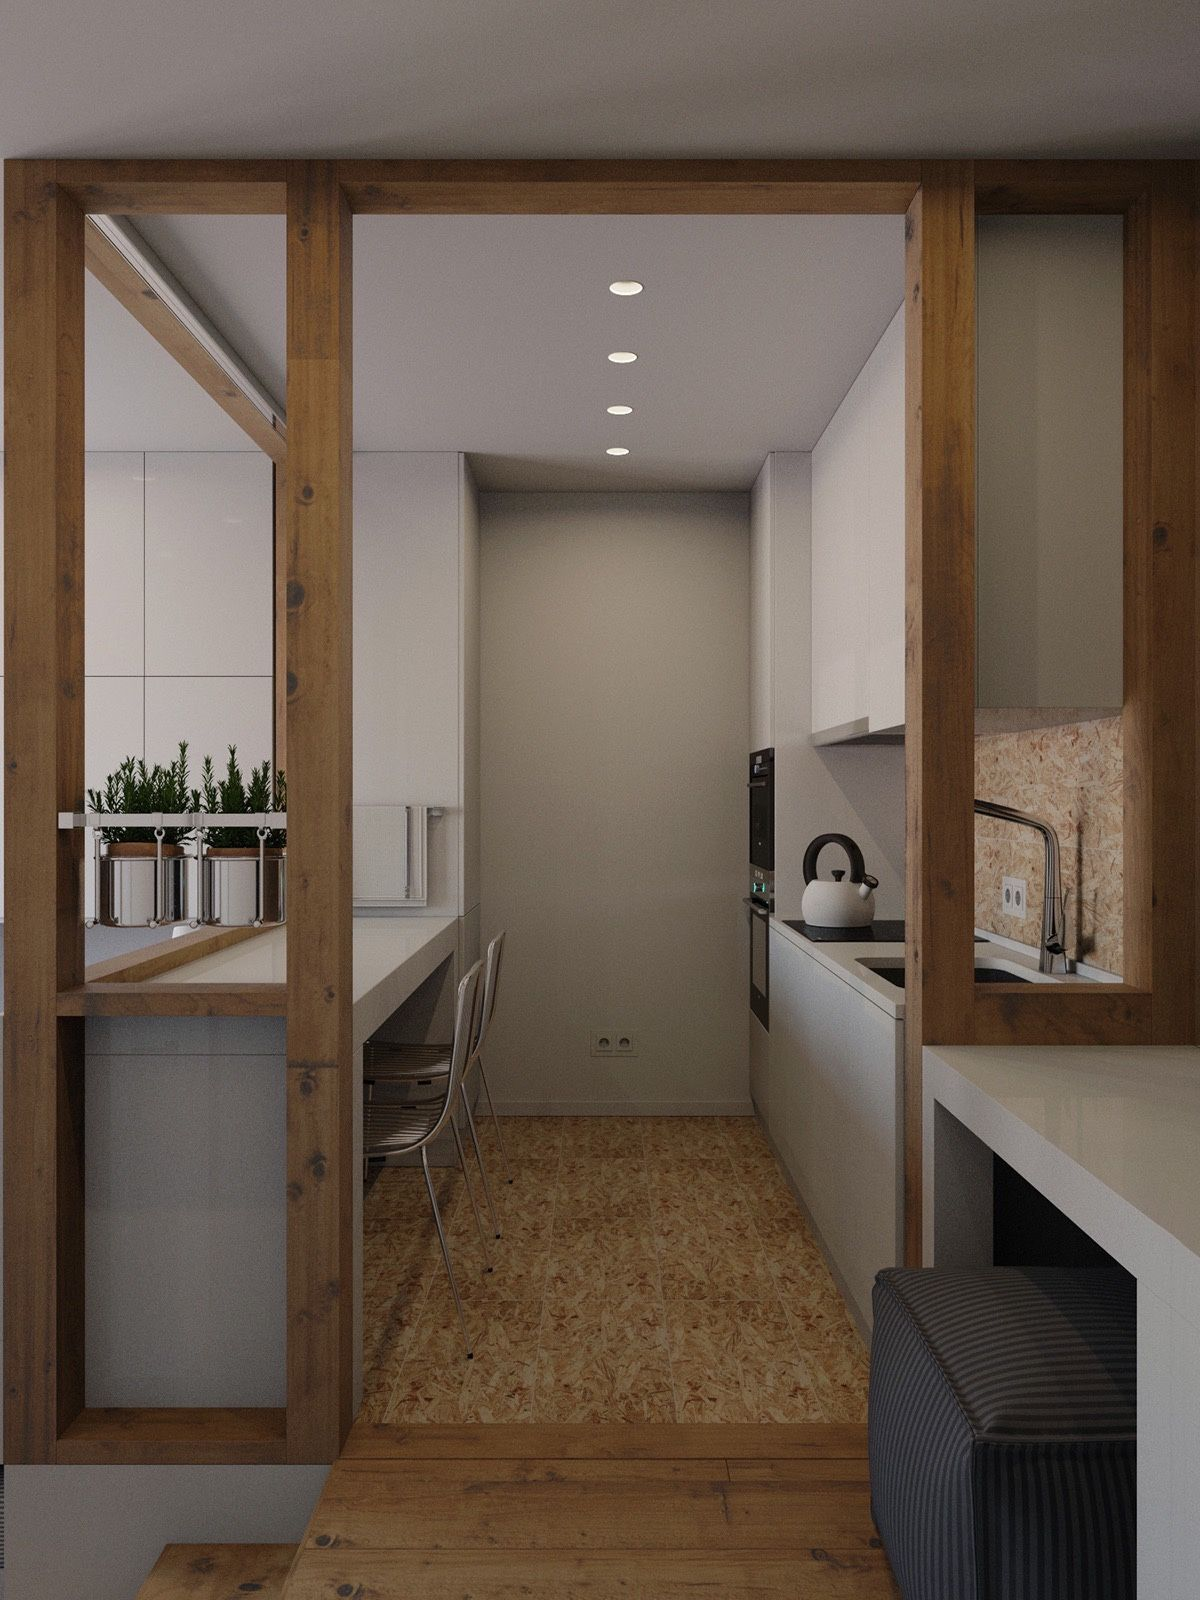 framed by wood stencils with a cork inlet and floor the kitchen is a feat small apartment - Cork Apartment Design